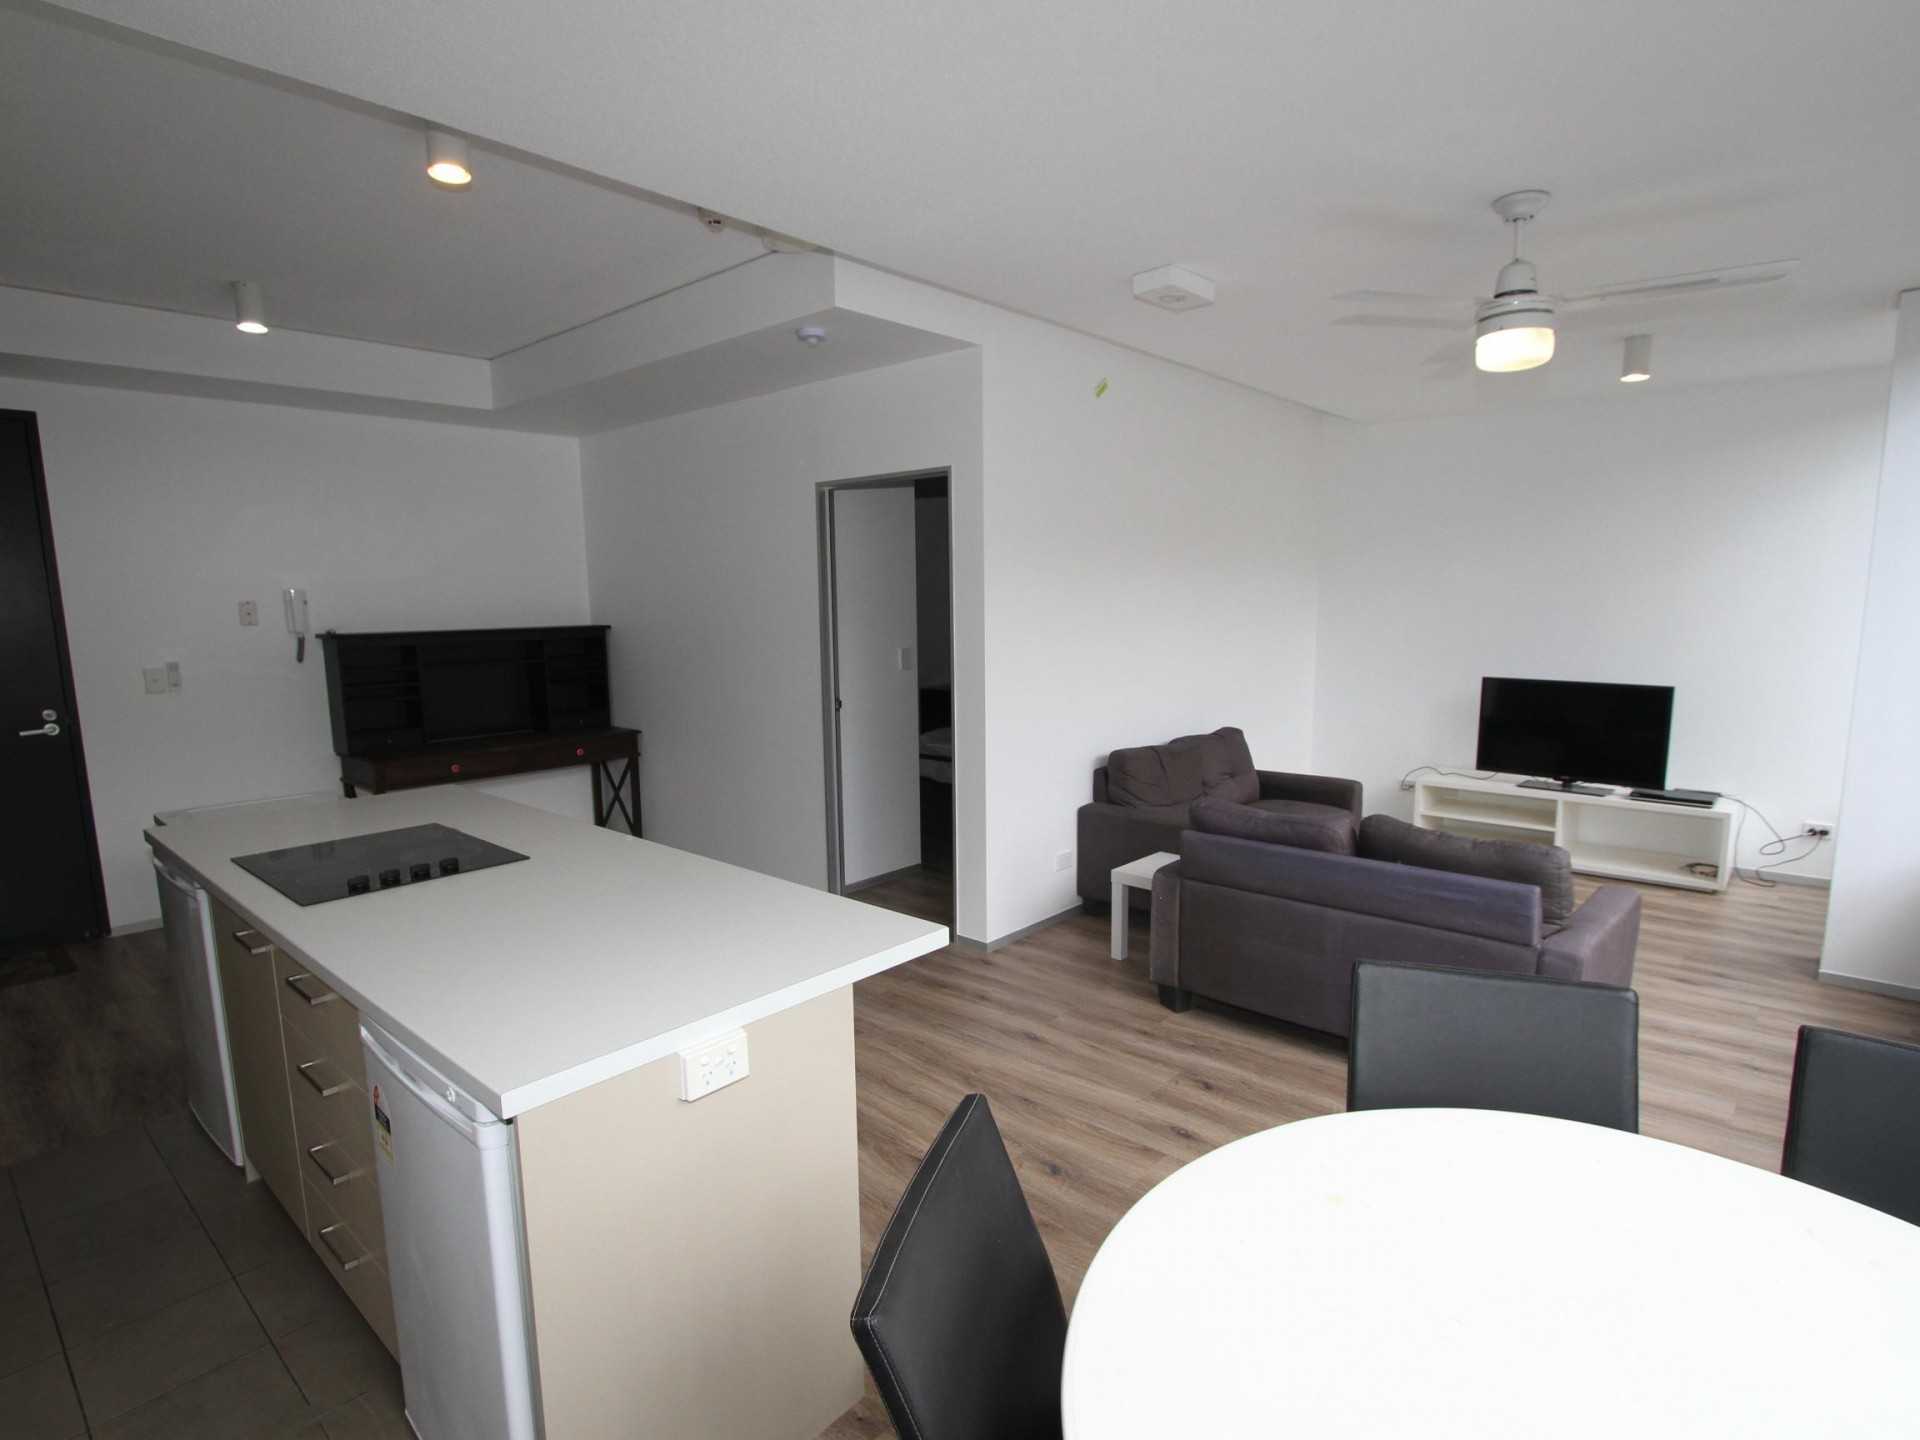 Renovated and ready to move in